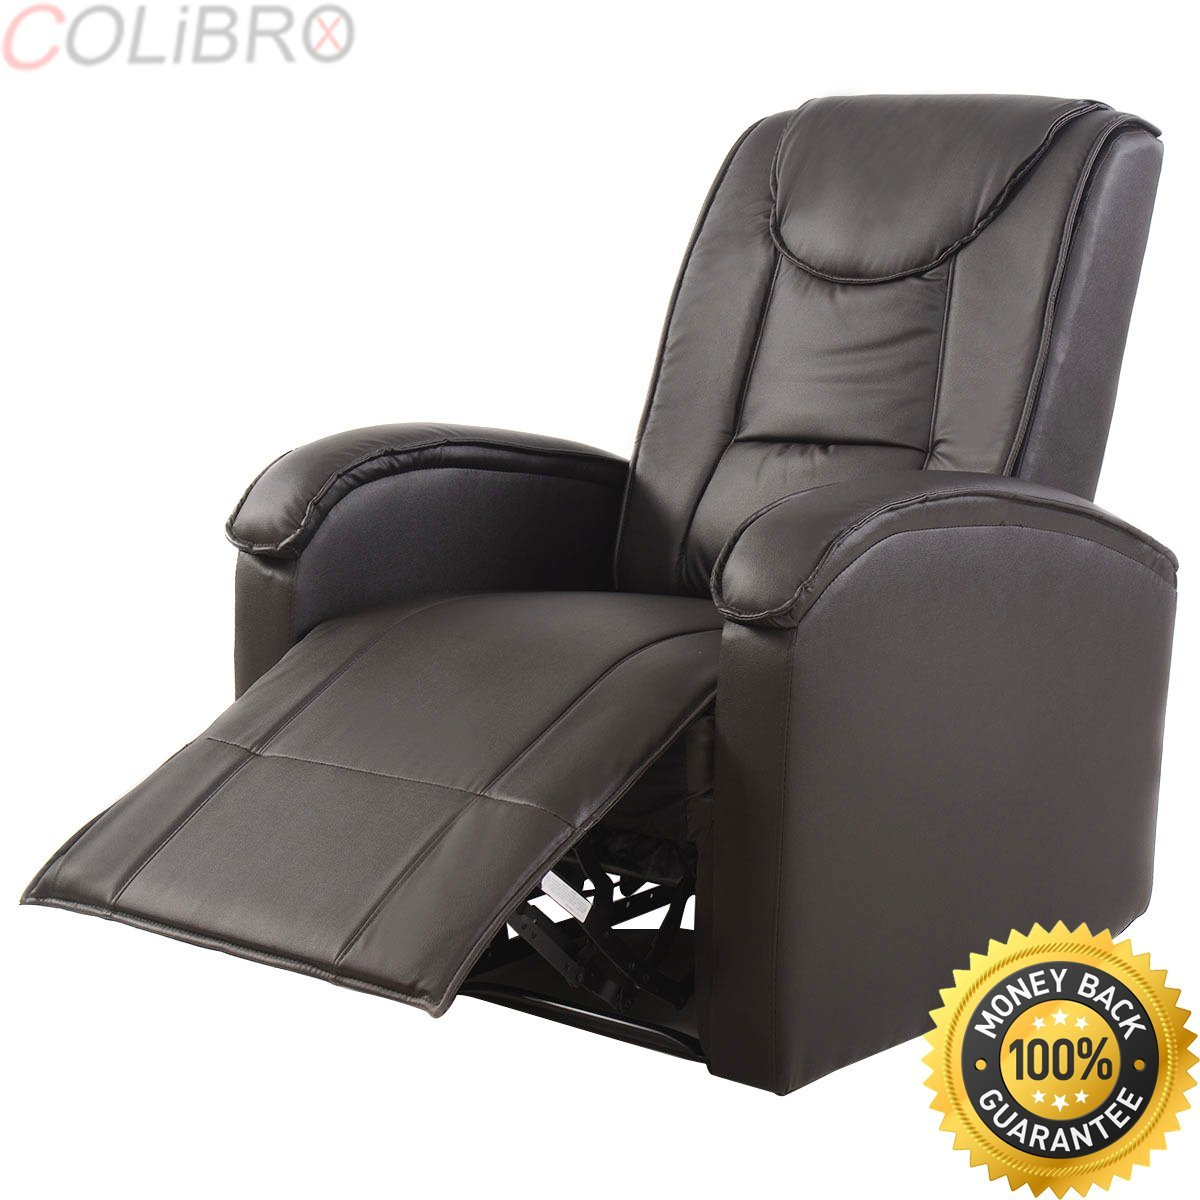 Get quotations · colibrox ergonomic sofa chair recliner lounge deluxe pu leather home furniture brown new